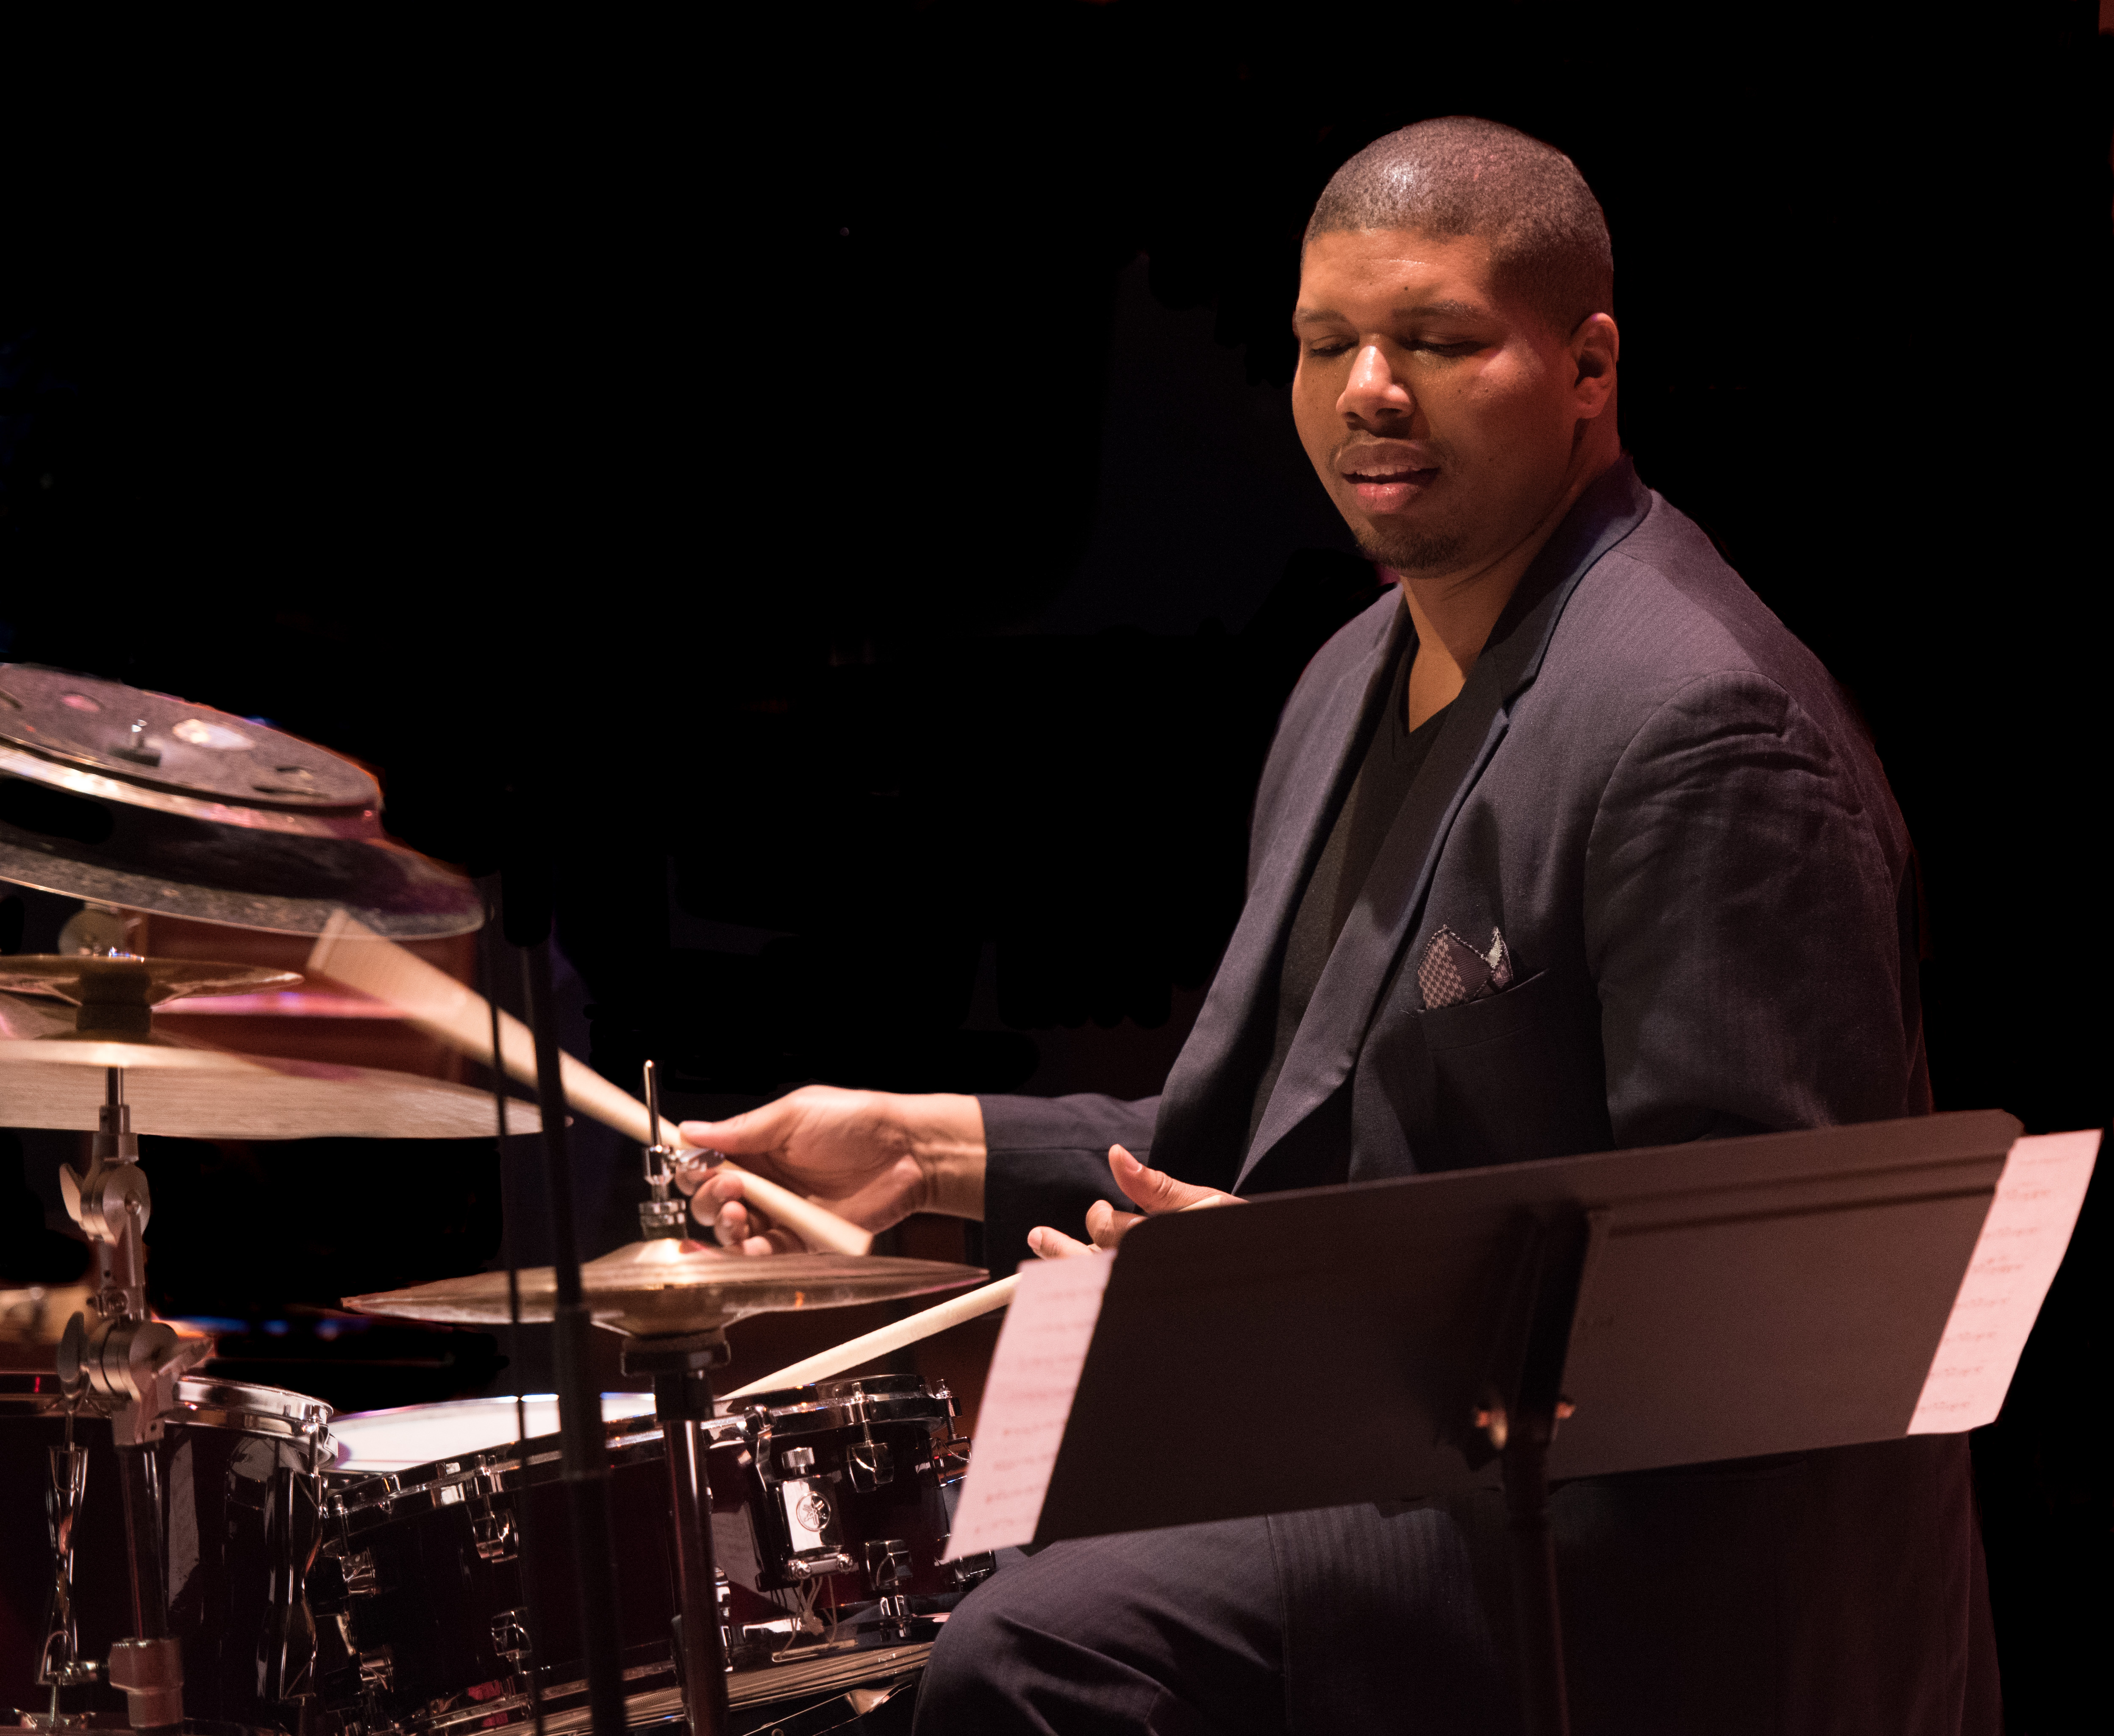 Jason Brown with the Amina Figarova Sextet At The Musical Instrument Museum (MIM) In Phoenix